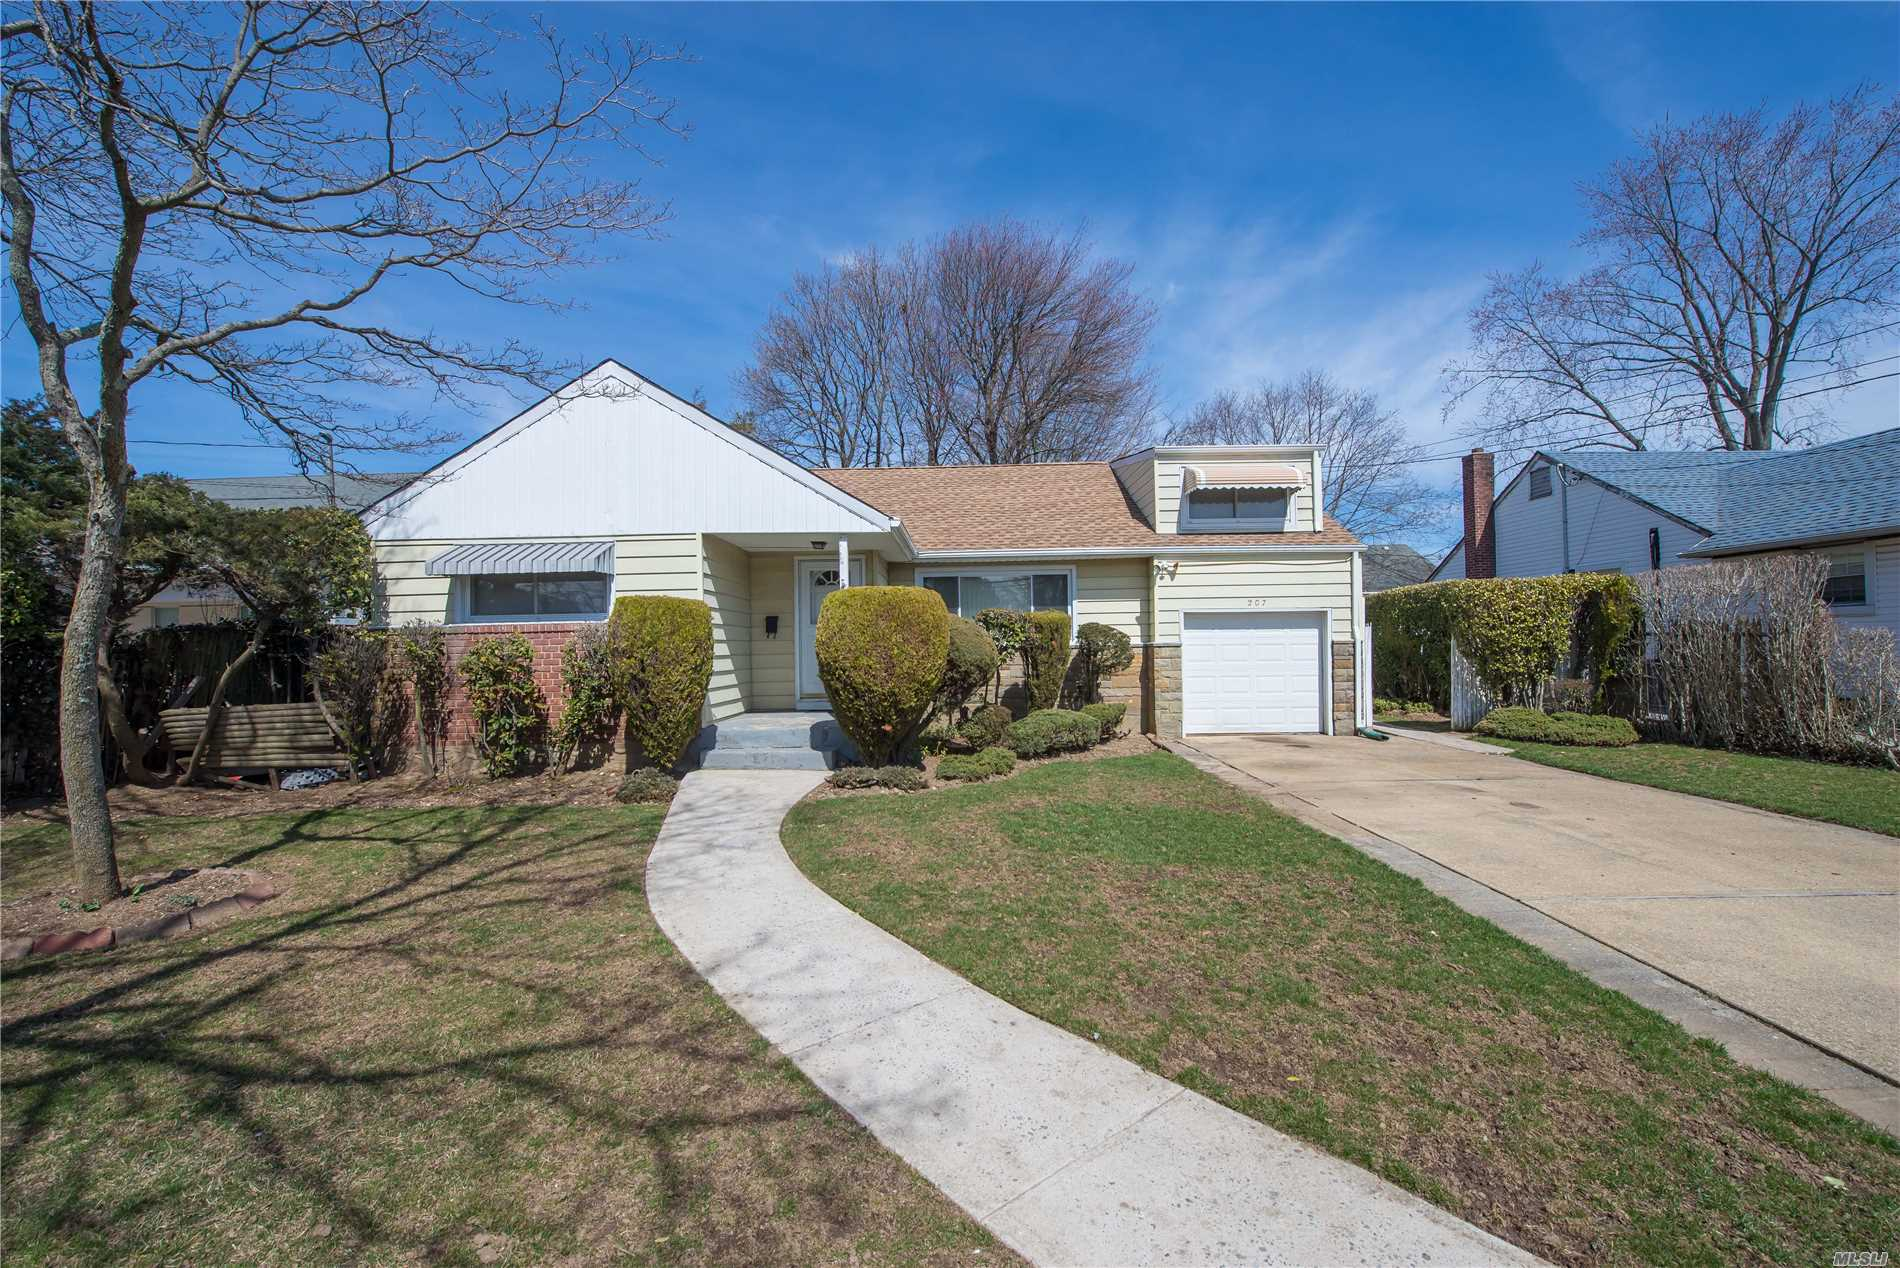 Unique Expanded Ranch with Center Hall and Tons of Potential! Great lay-out with large Family Room with Sliders to Manicured Yard! Huge walk-in Attic for all of your storage needs with two Compartments! Updated Bath, Brand New Roof, Gas Heating! Great Value for the Money! Massapequa Schools! ***PROPERTY IS BEING SOLD AS-IS***Taxes Under $10K! Great Investment!